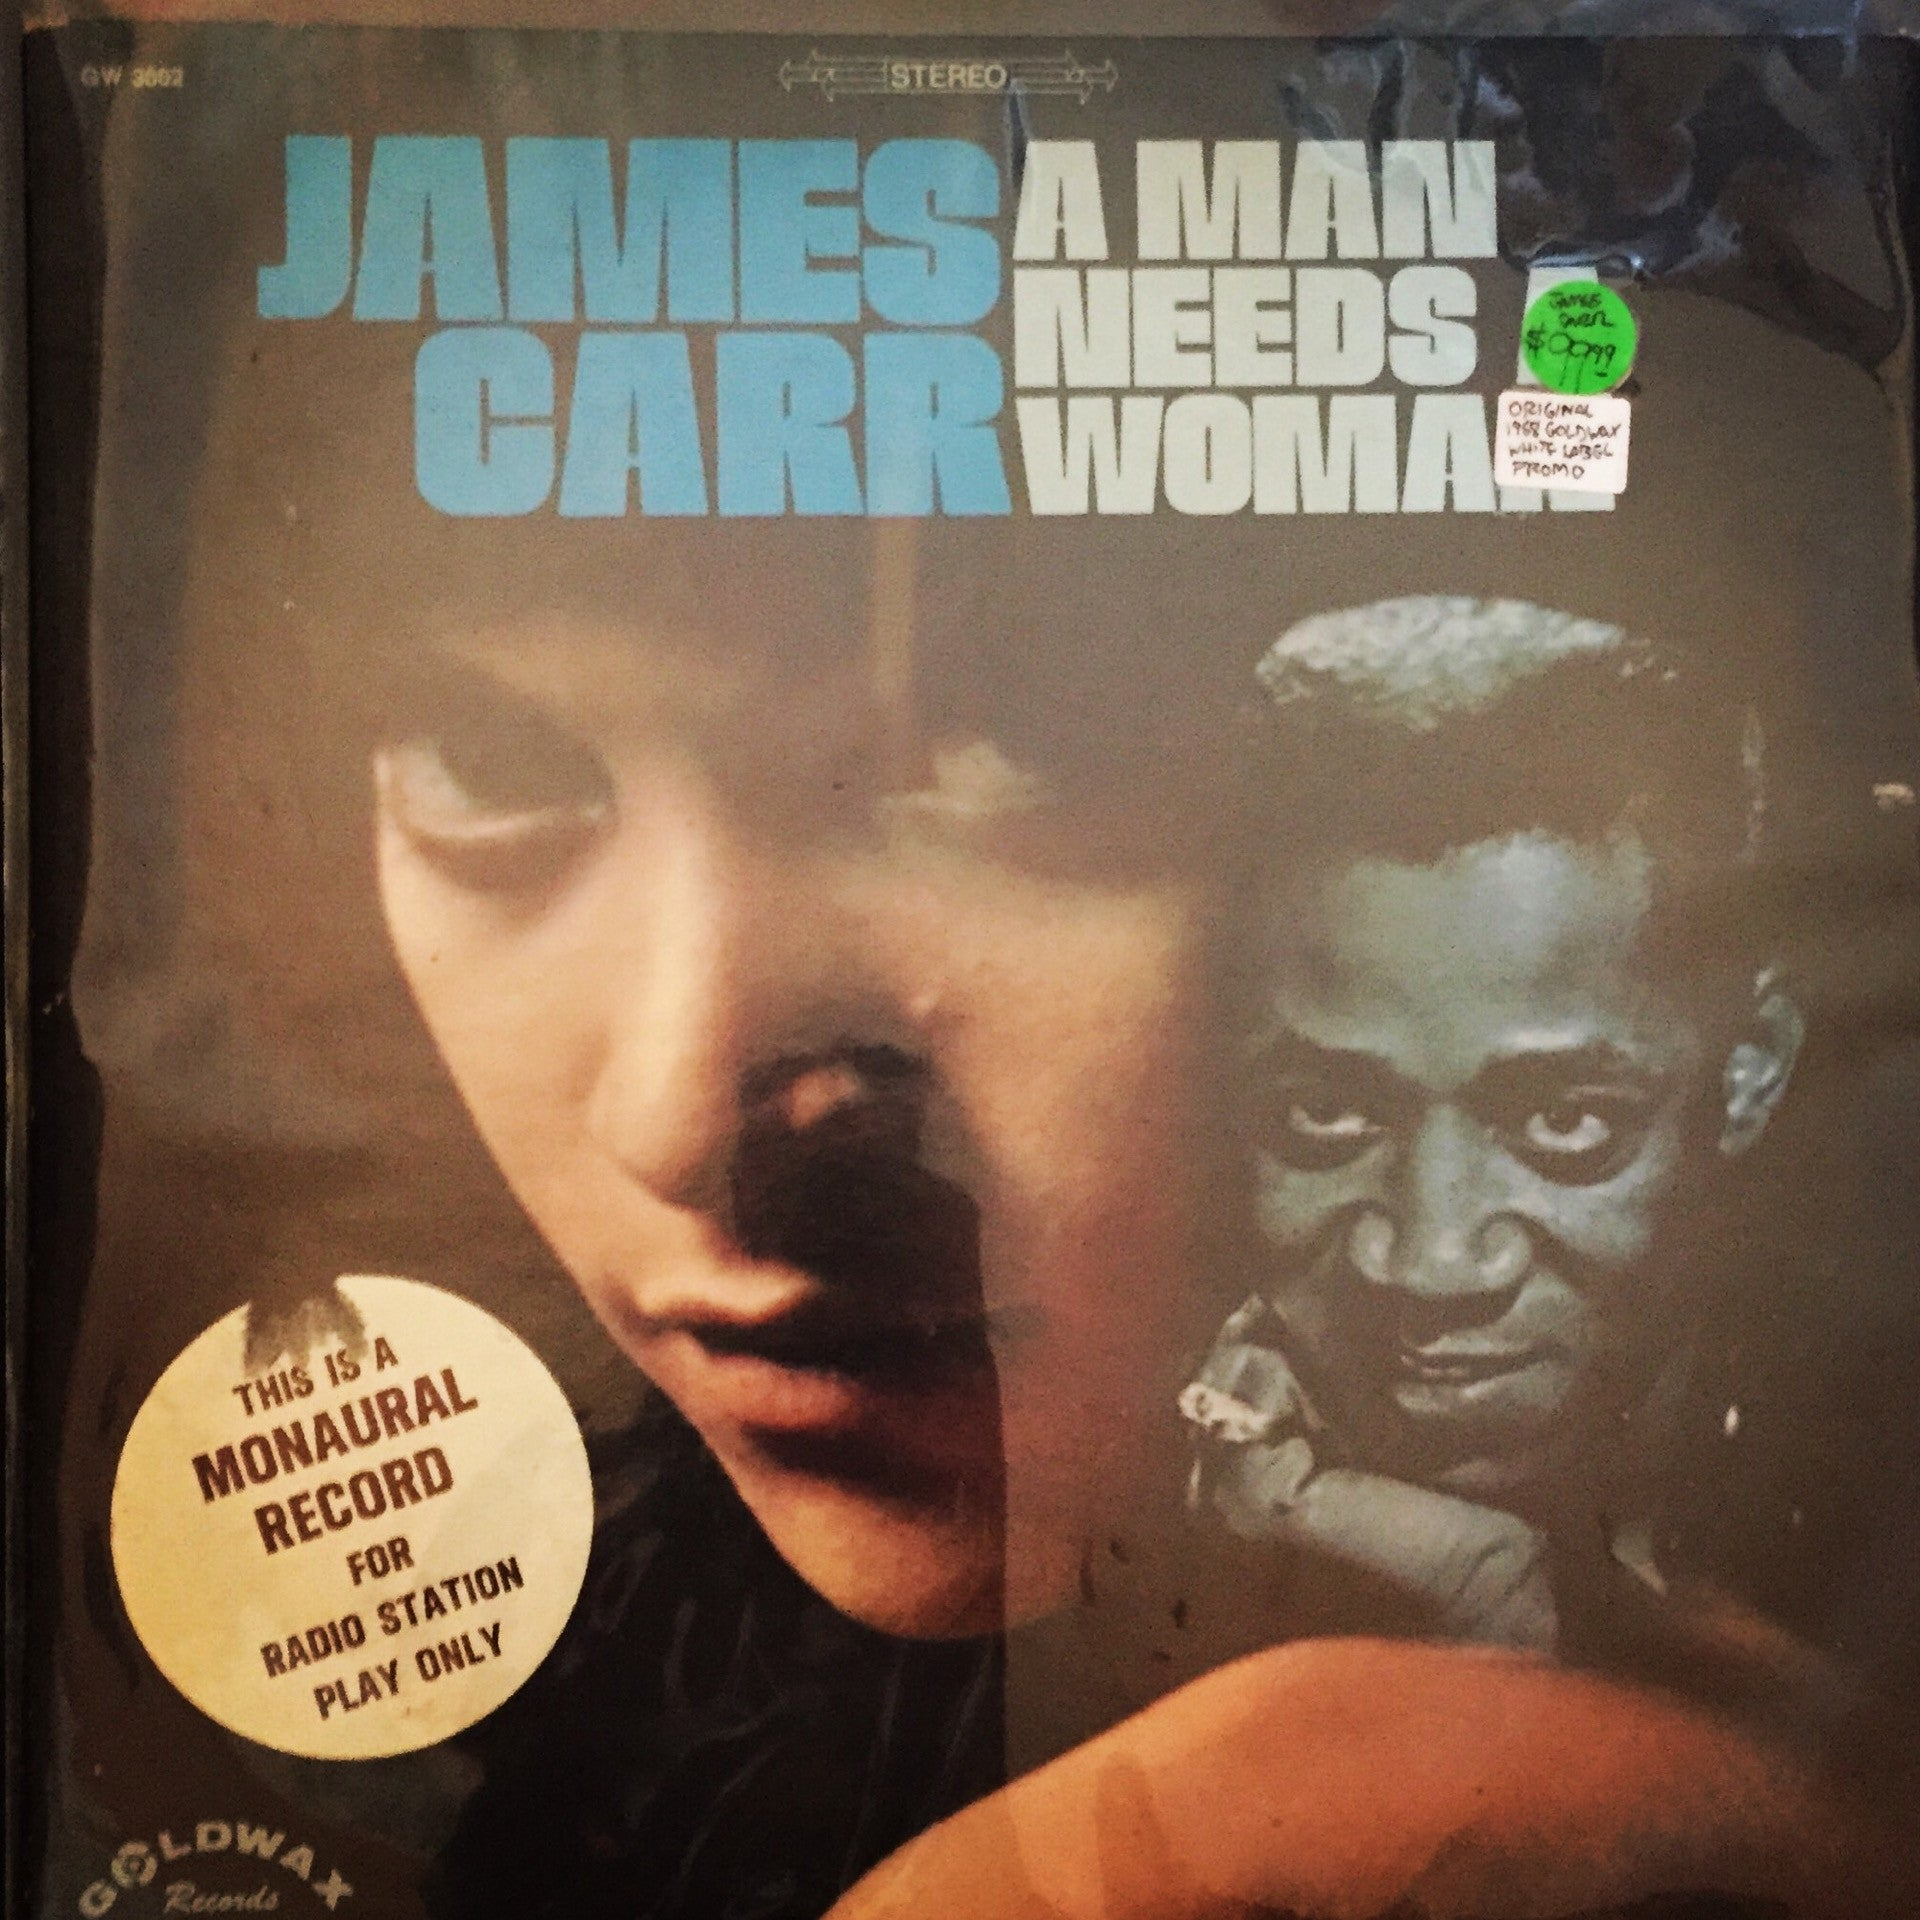 James Carr - A Man Needs A Woman LP - 1968 Goldwax White Label Promo